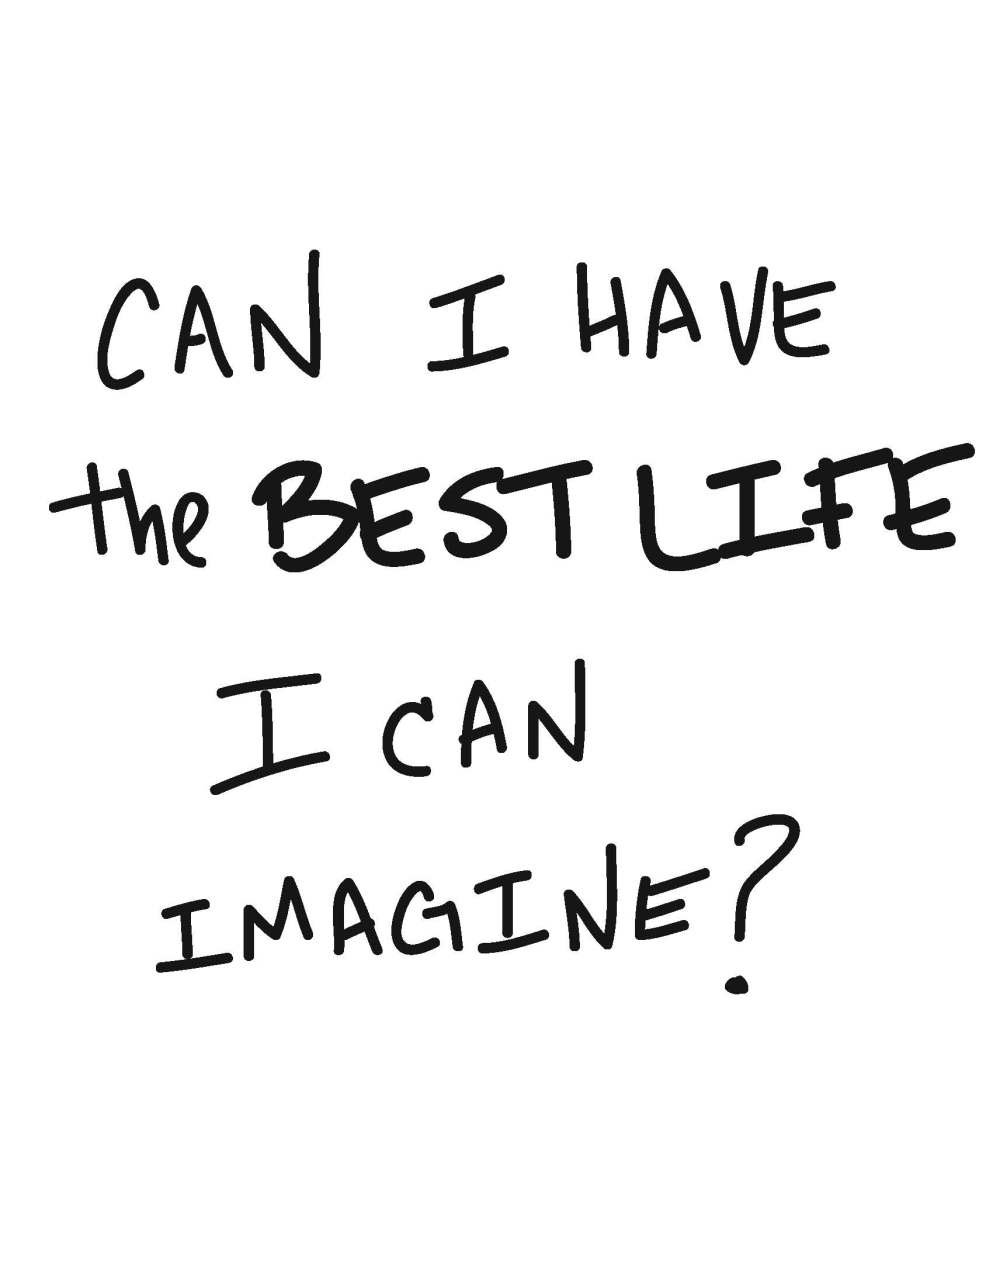 7-can-i-have-the-life-i-imagined